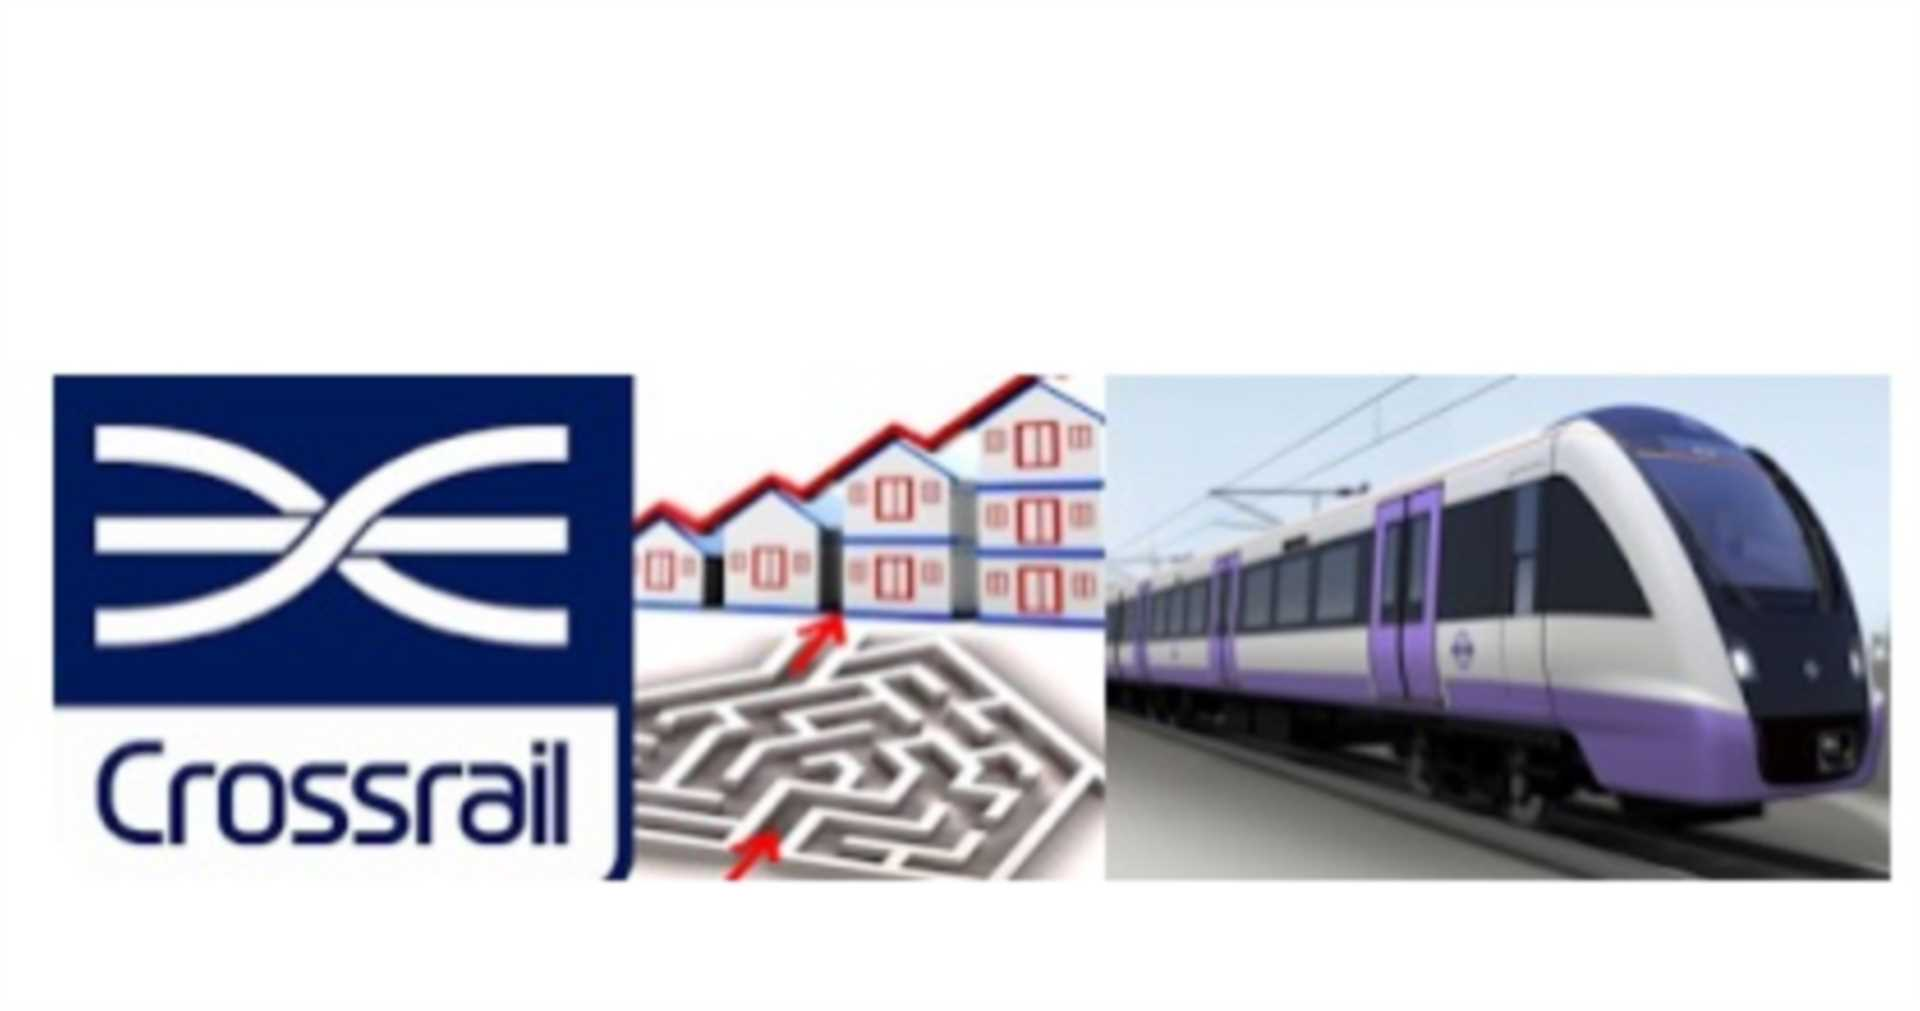 Crossrail arriving near Marylebone by 2018! What will this new service provide and how will it influence future investment choices, as well as the property market as a whole?